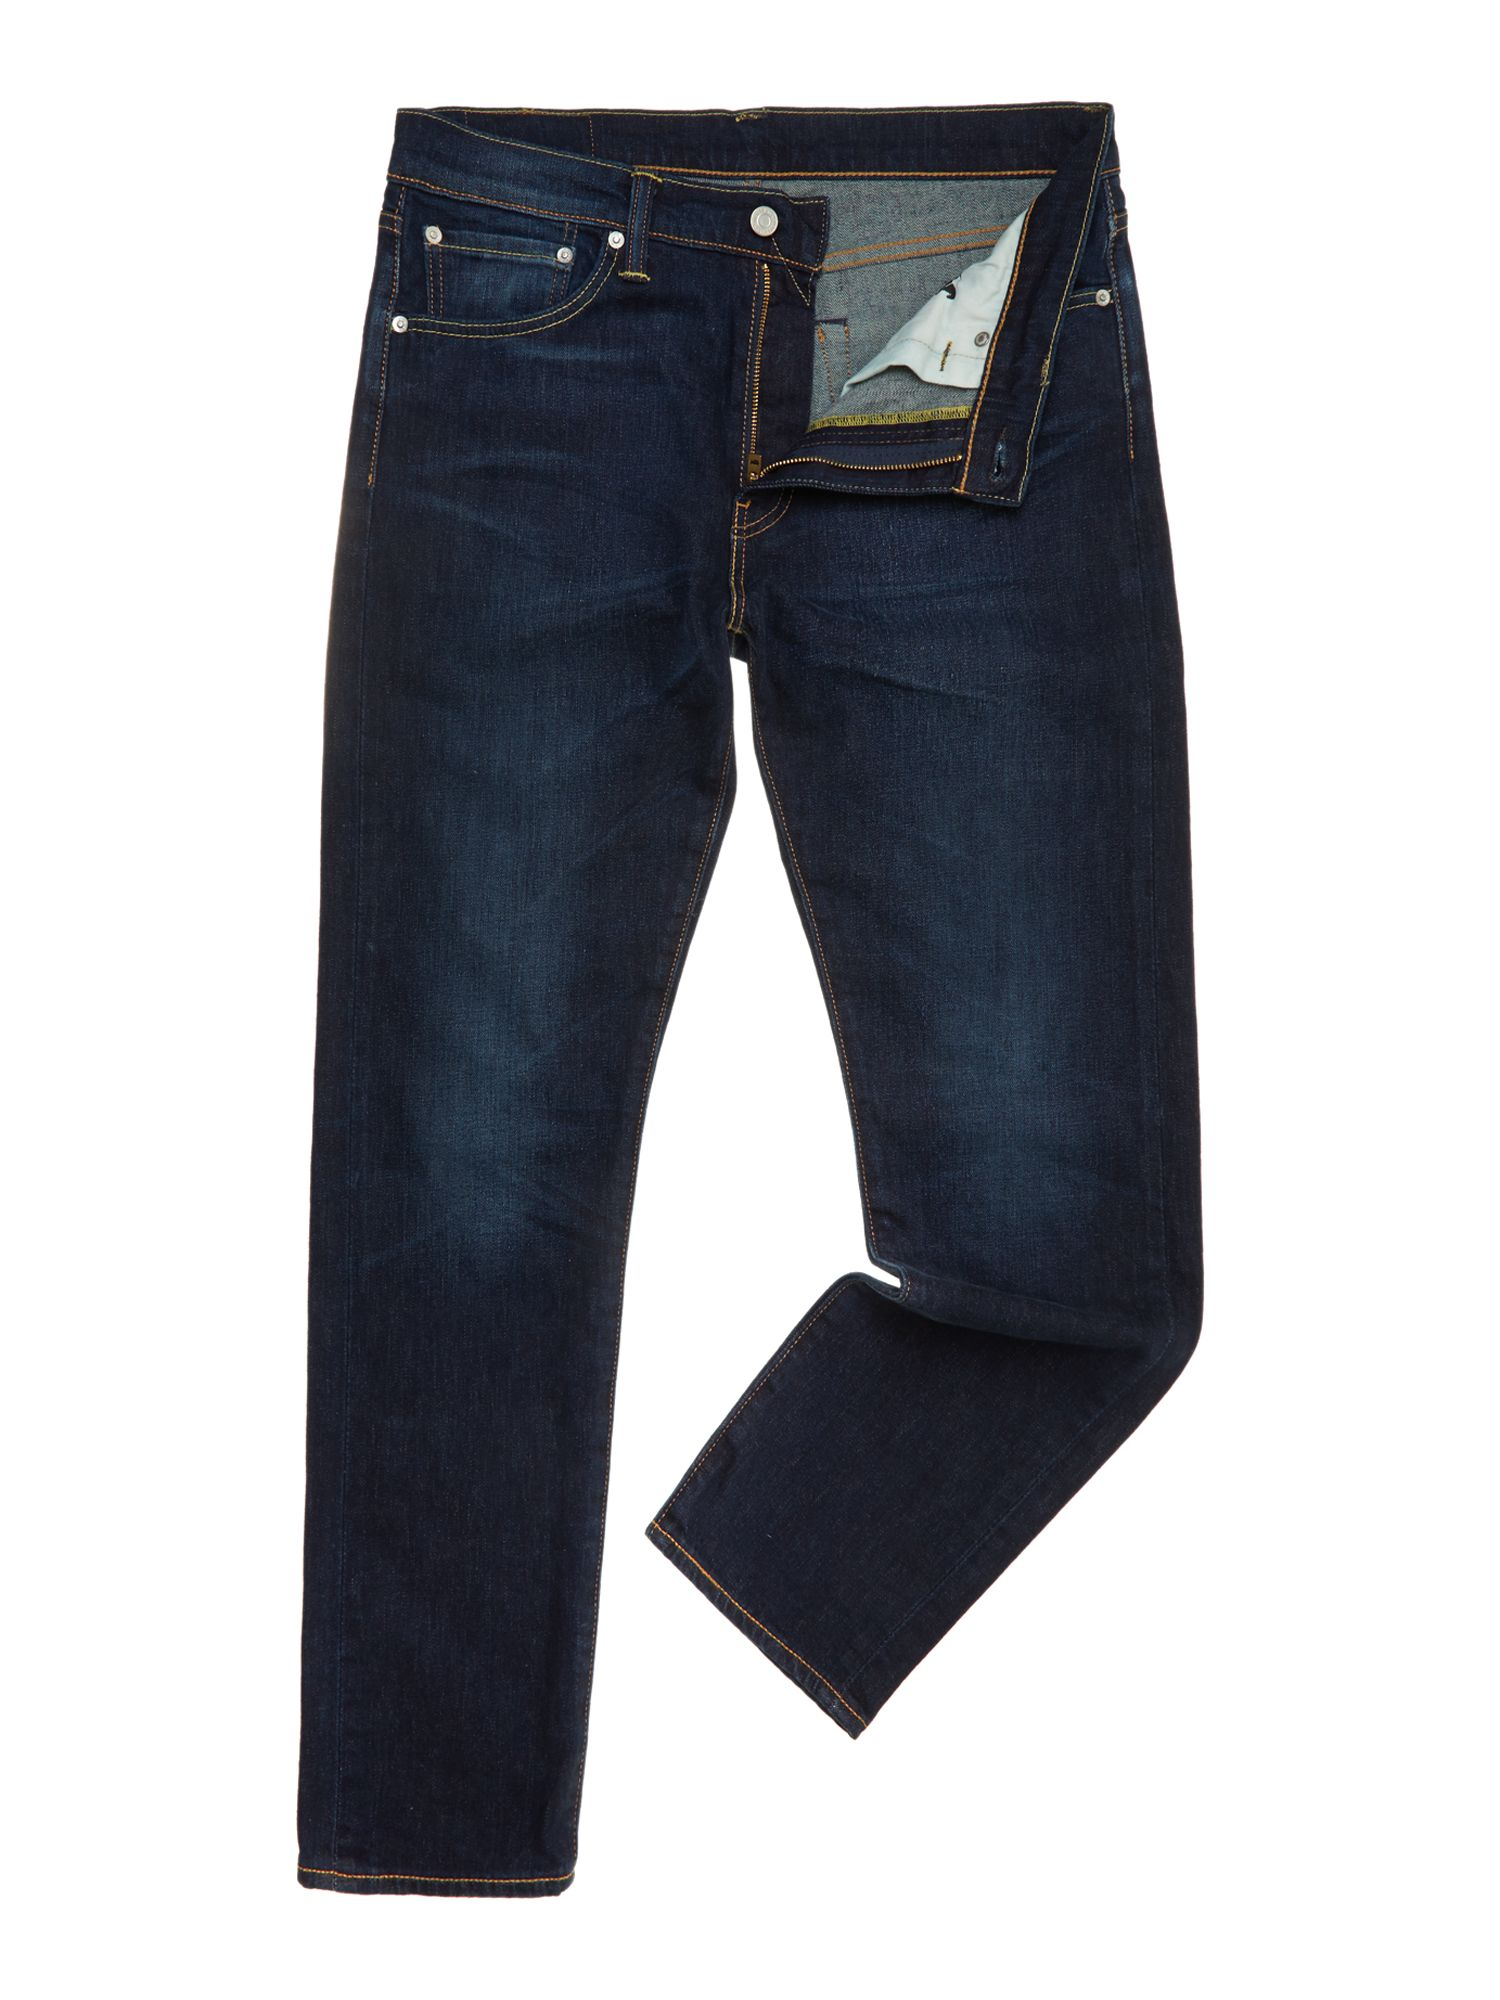 508 cali blue taper fit jean